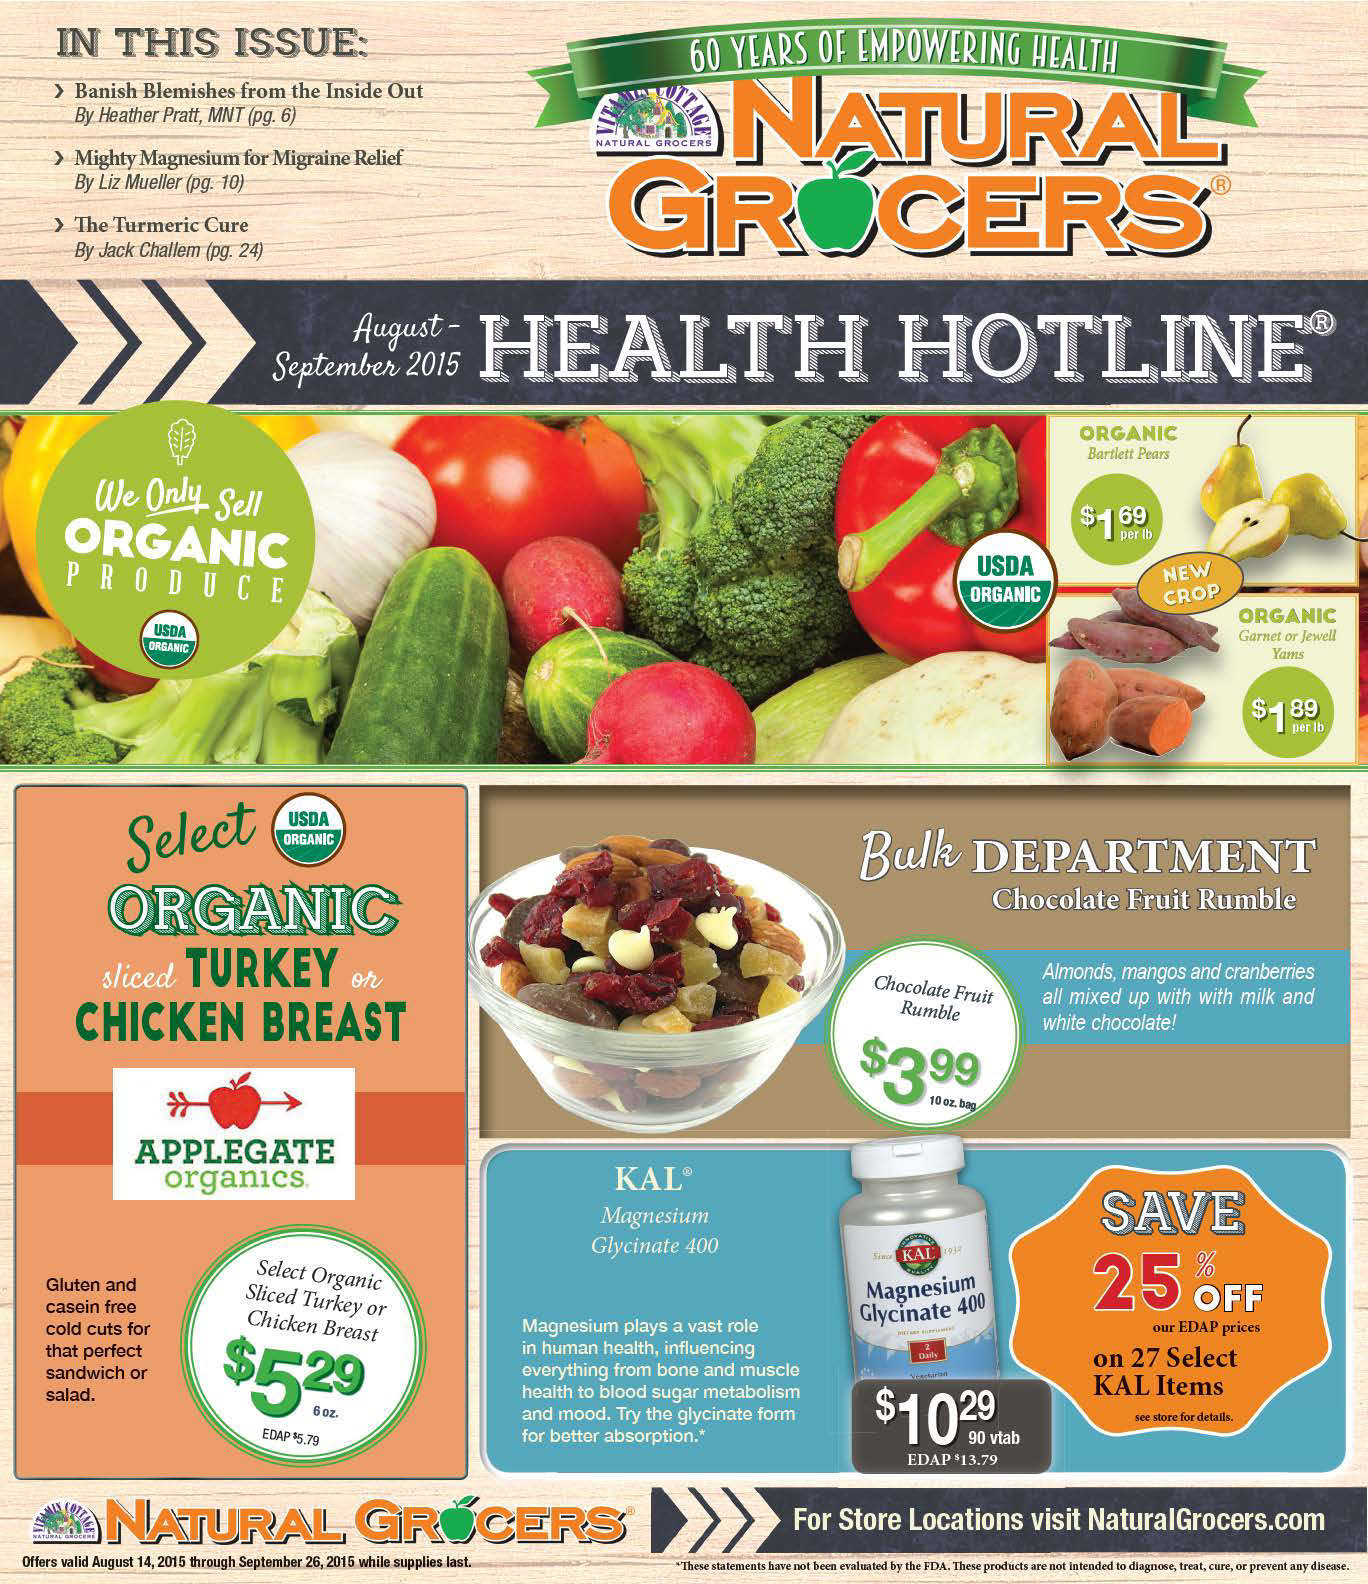 https://www.naturalgrocers.com/wp-content/uploads/2015/08/Aug-Sept-WEB_Page_01.jpg